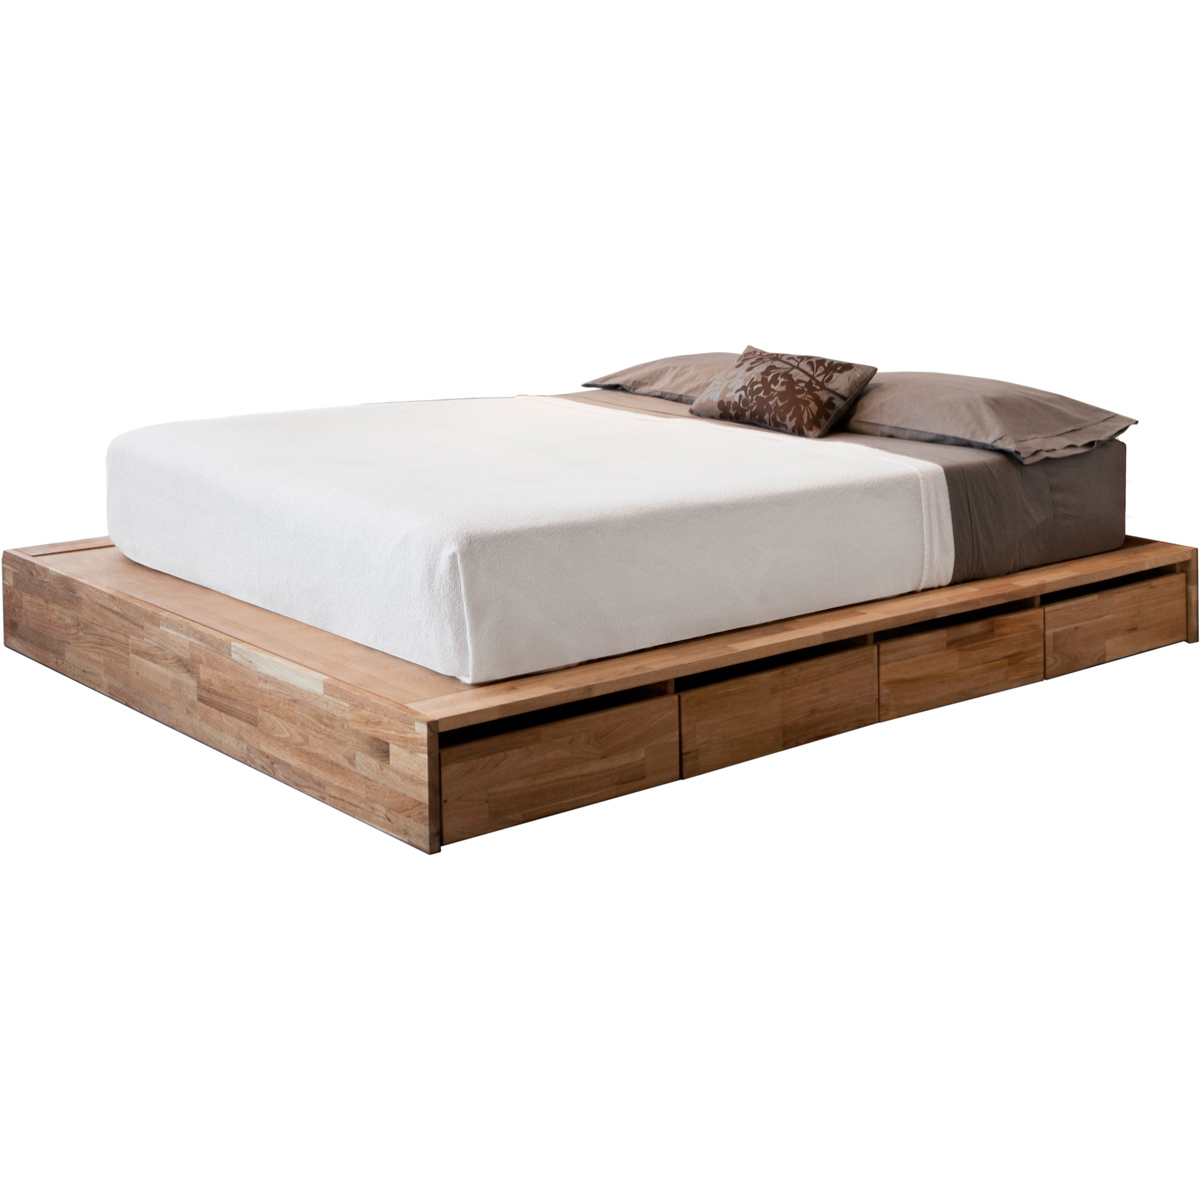 Twin Size Mattress And Box Spring Decor Ideasdecor Ideas